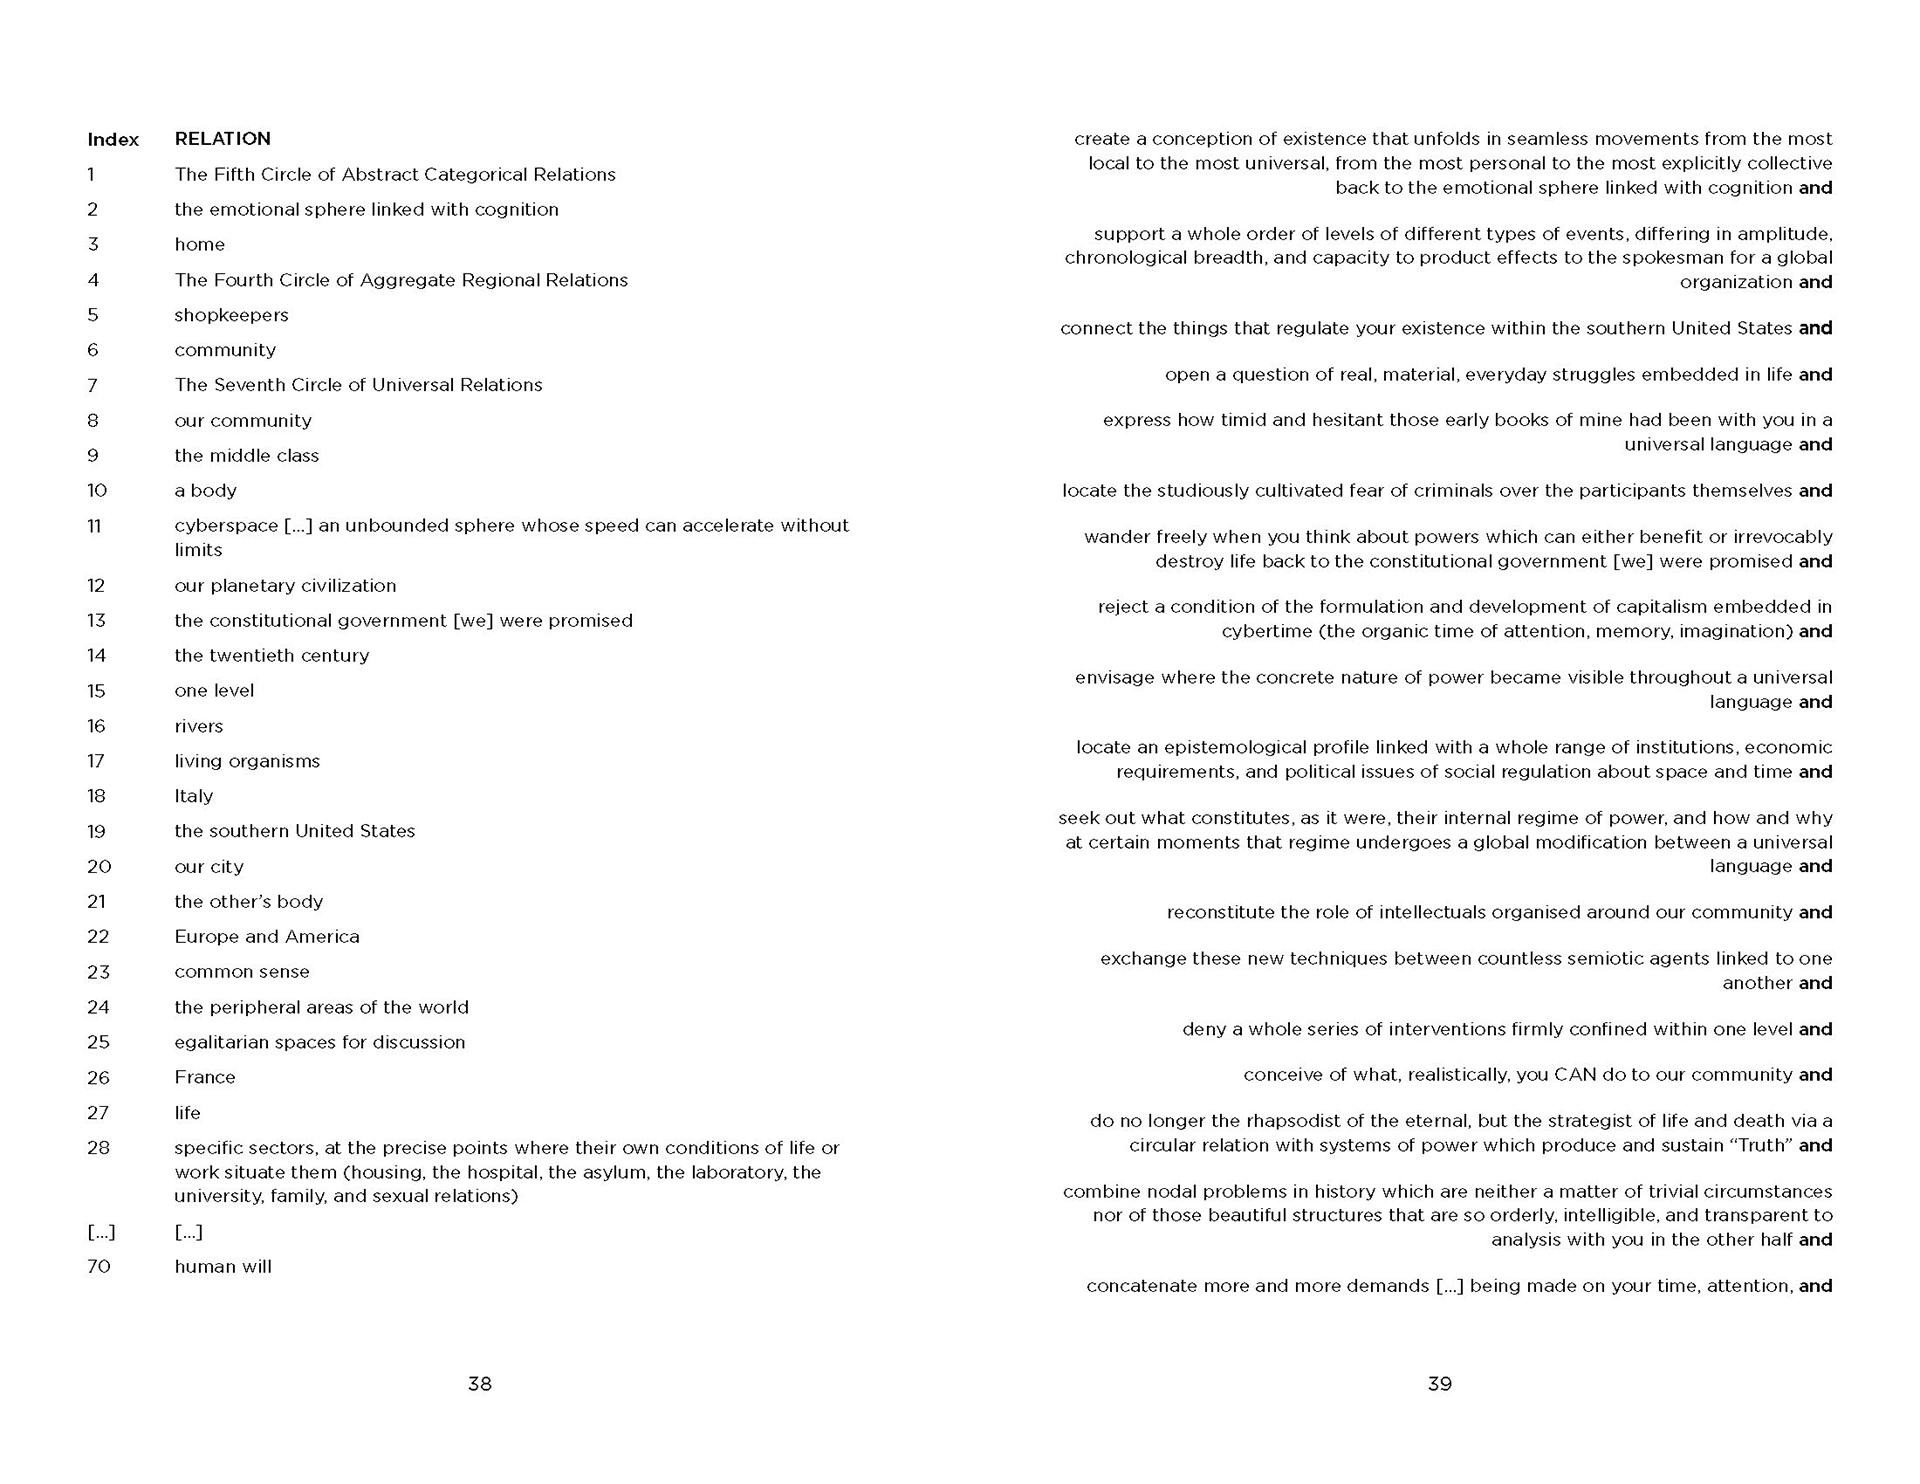 index_Page_20.png